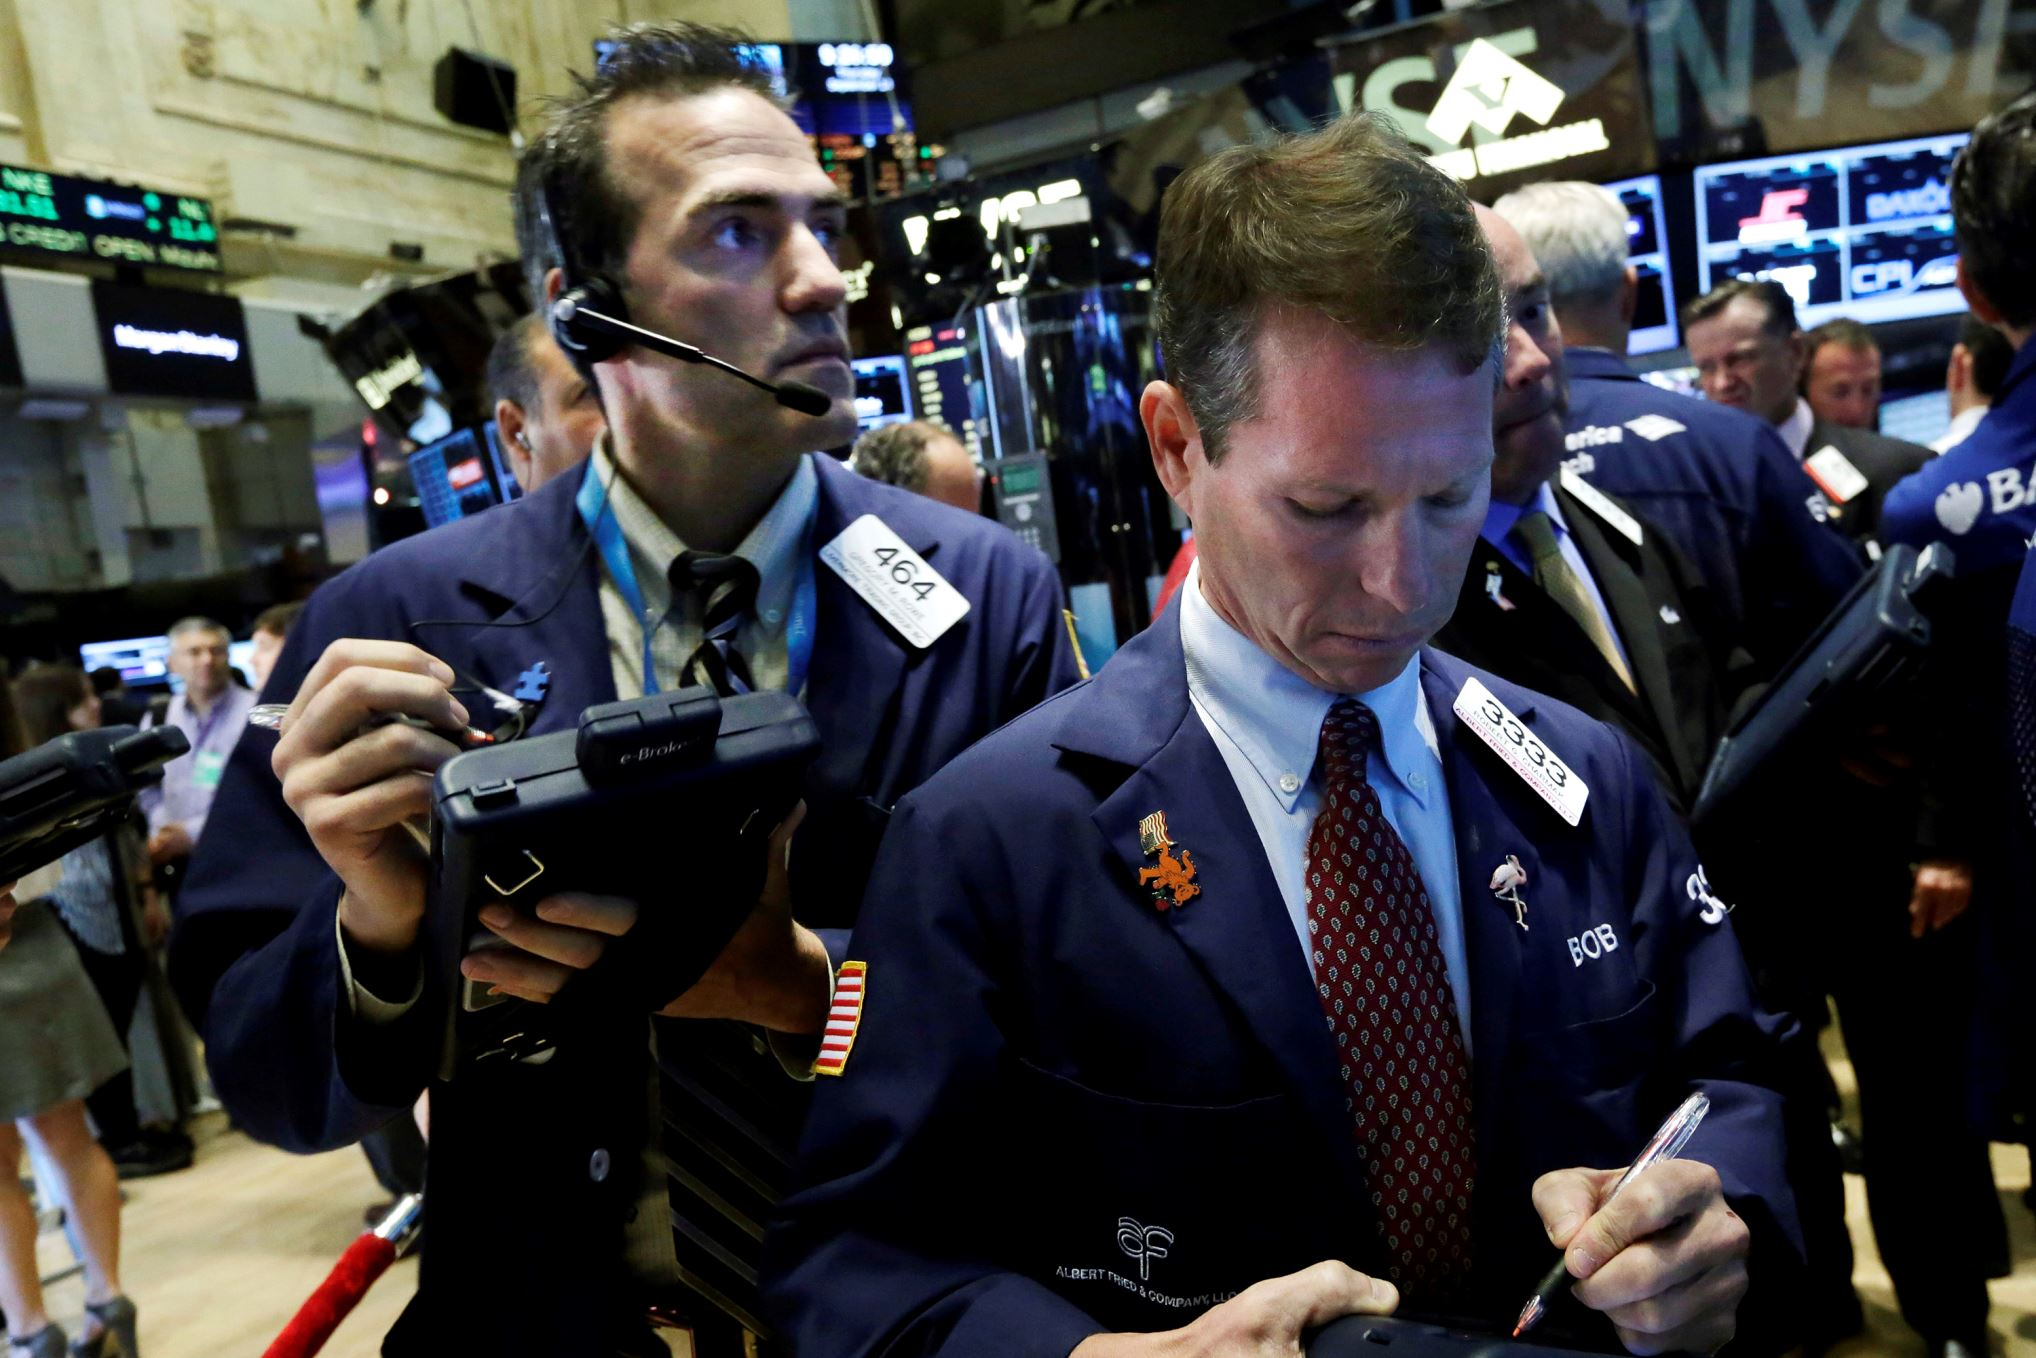 North American stock markets start the trading day higher, loonie edges lower